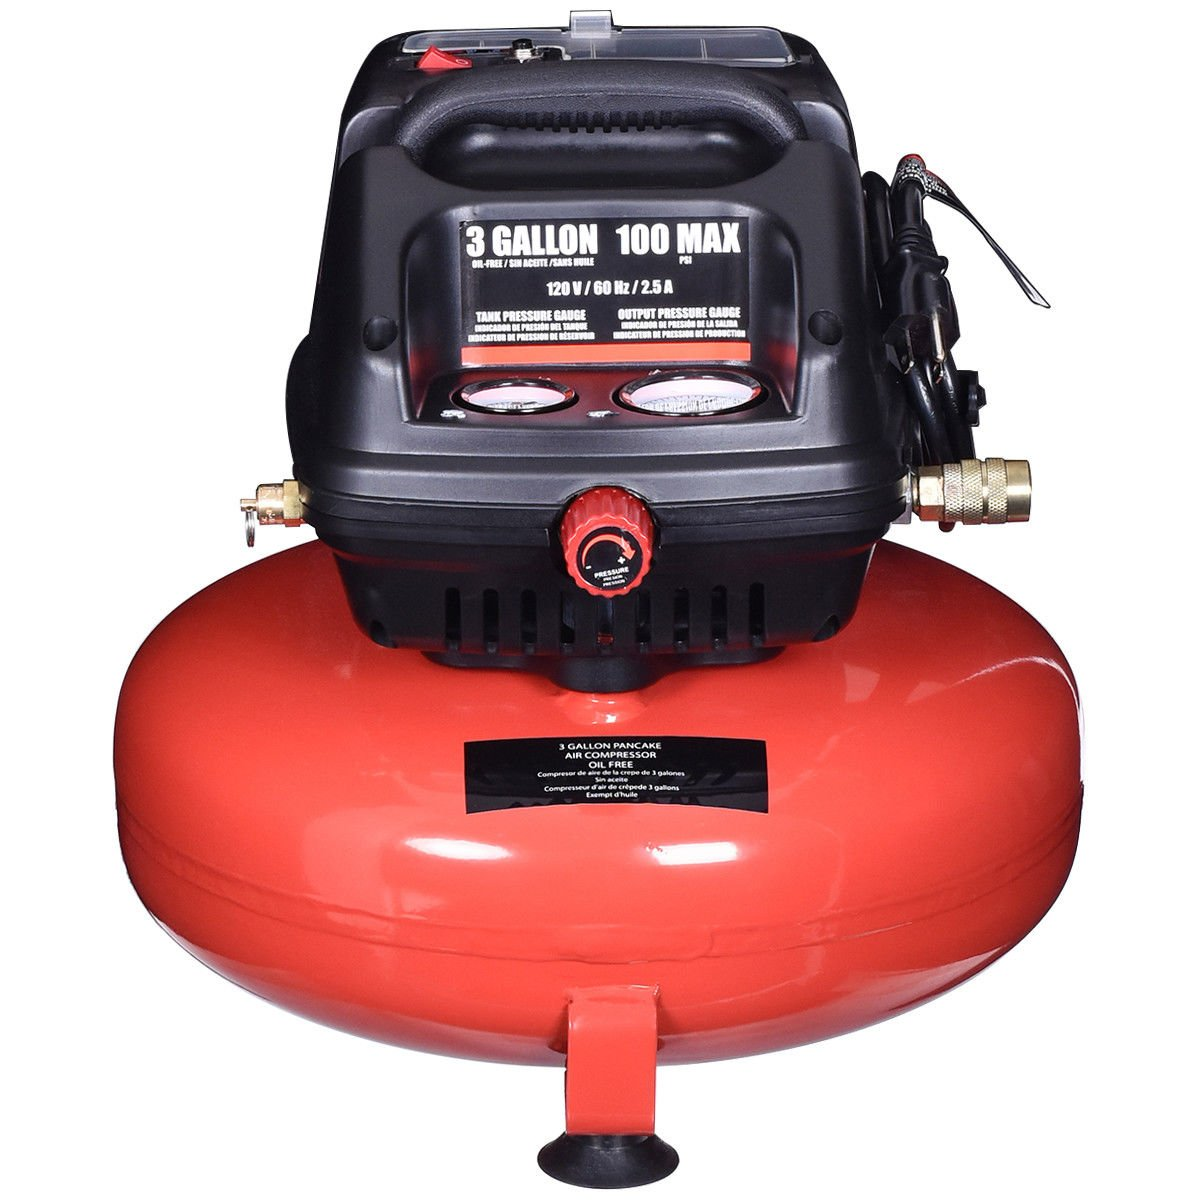 Amazon.com : Gymax 3 Gallon 100 PSI Oil-Free Pancake Air Compressor 0.5 HP Motor Portable : Garden & Outdoor